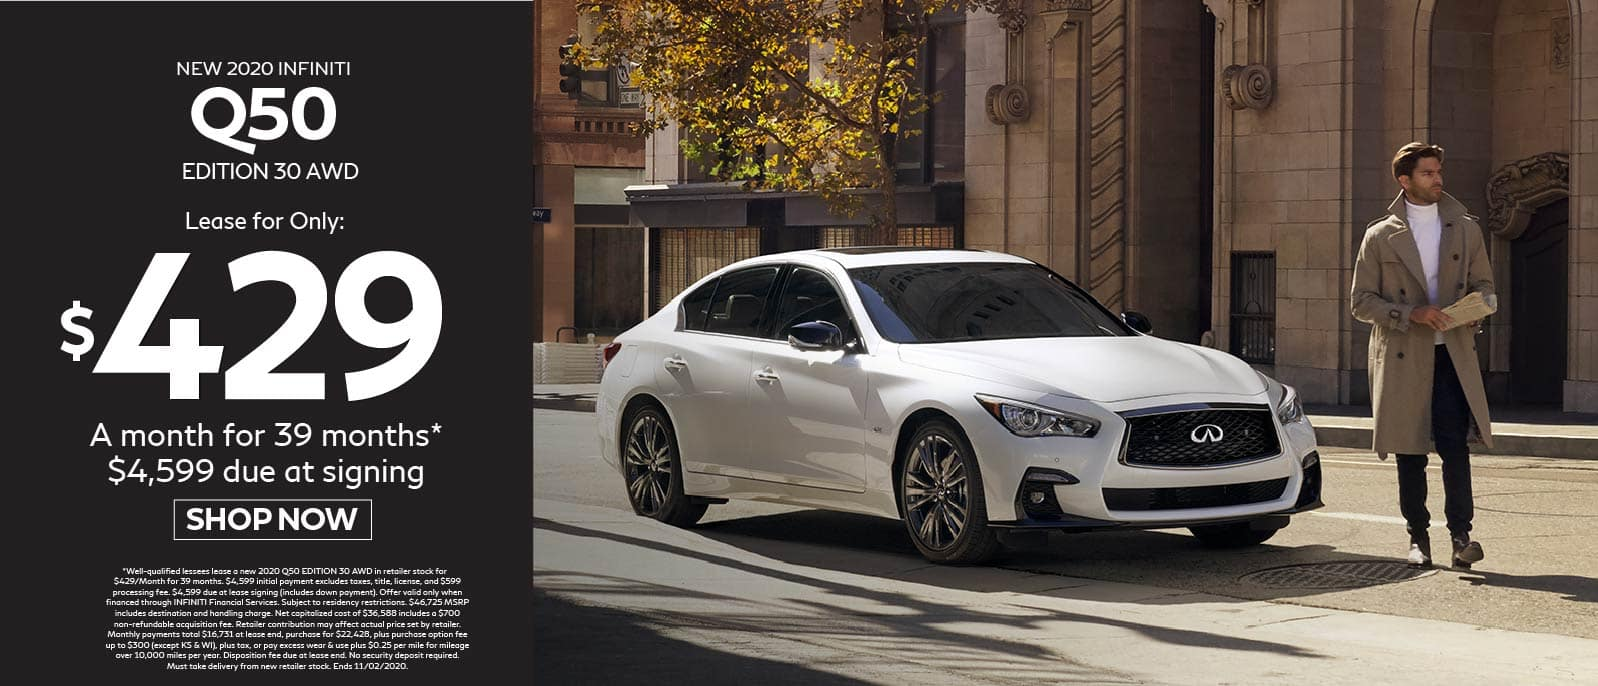 2020 INFINITI Q50 $429 a month for 39 months $4599 due at signing. Shop now